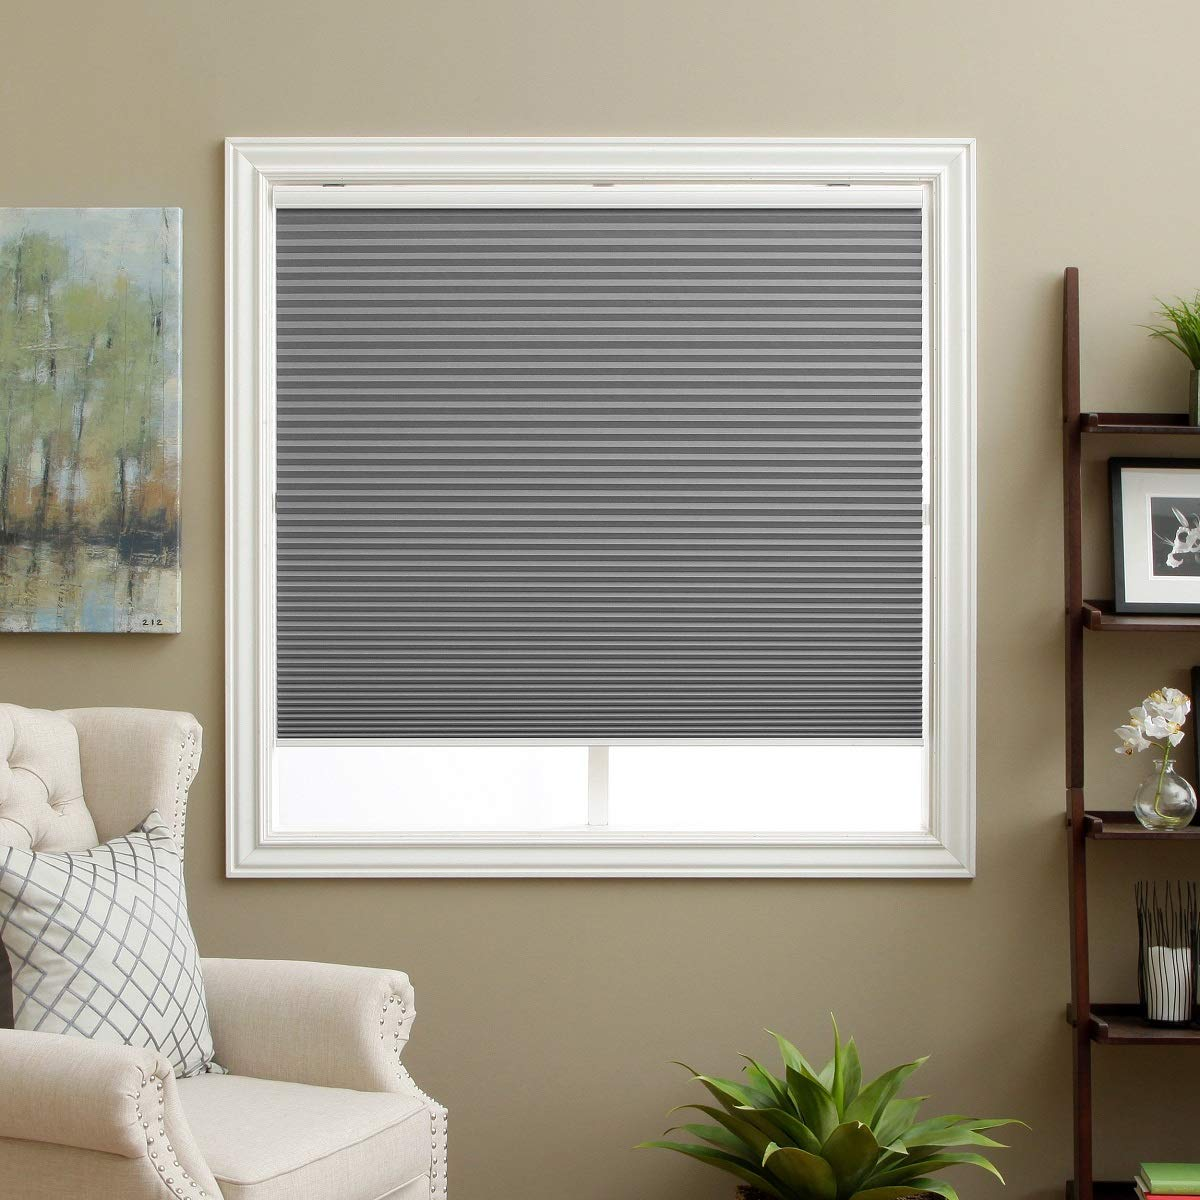 """SBARTAR Cellular Shades Cordless Blackout Honeycomb Blinds Fabric Window Shades 24"""" W x 38"""" H, Cool Silver(Blackout)"""